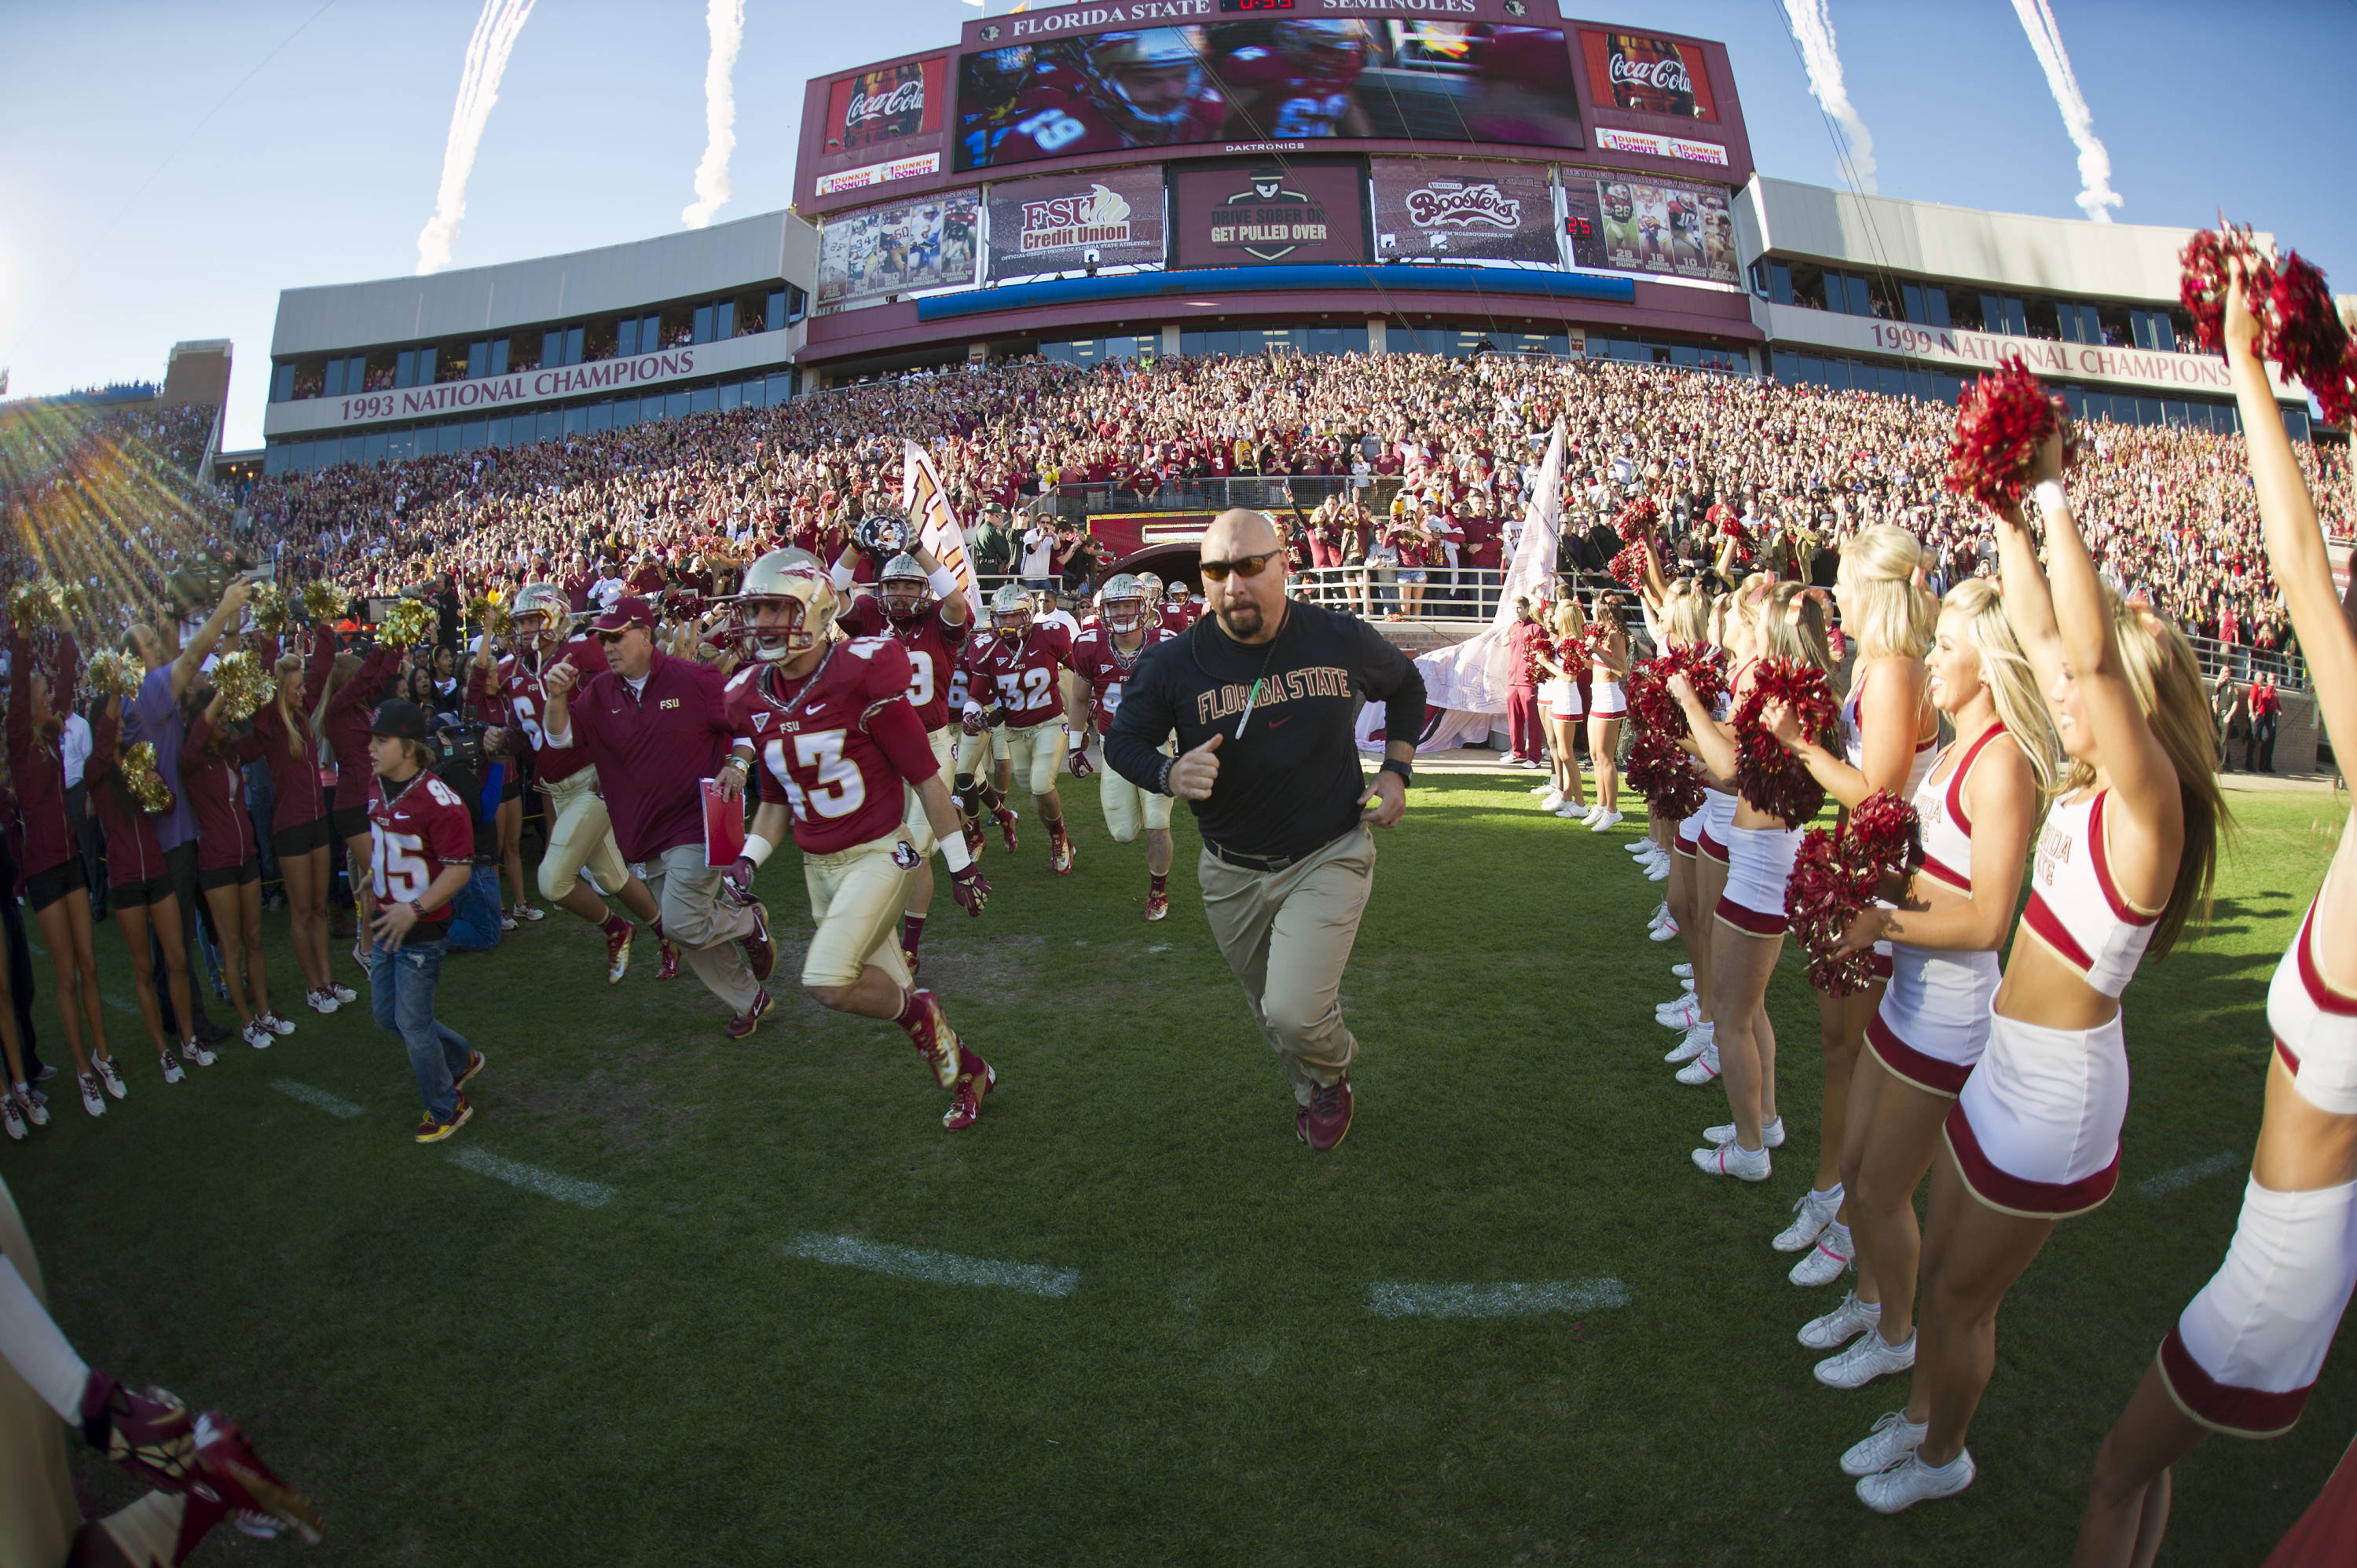 The Seminoles take the field led by Coach Fisher